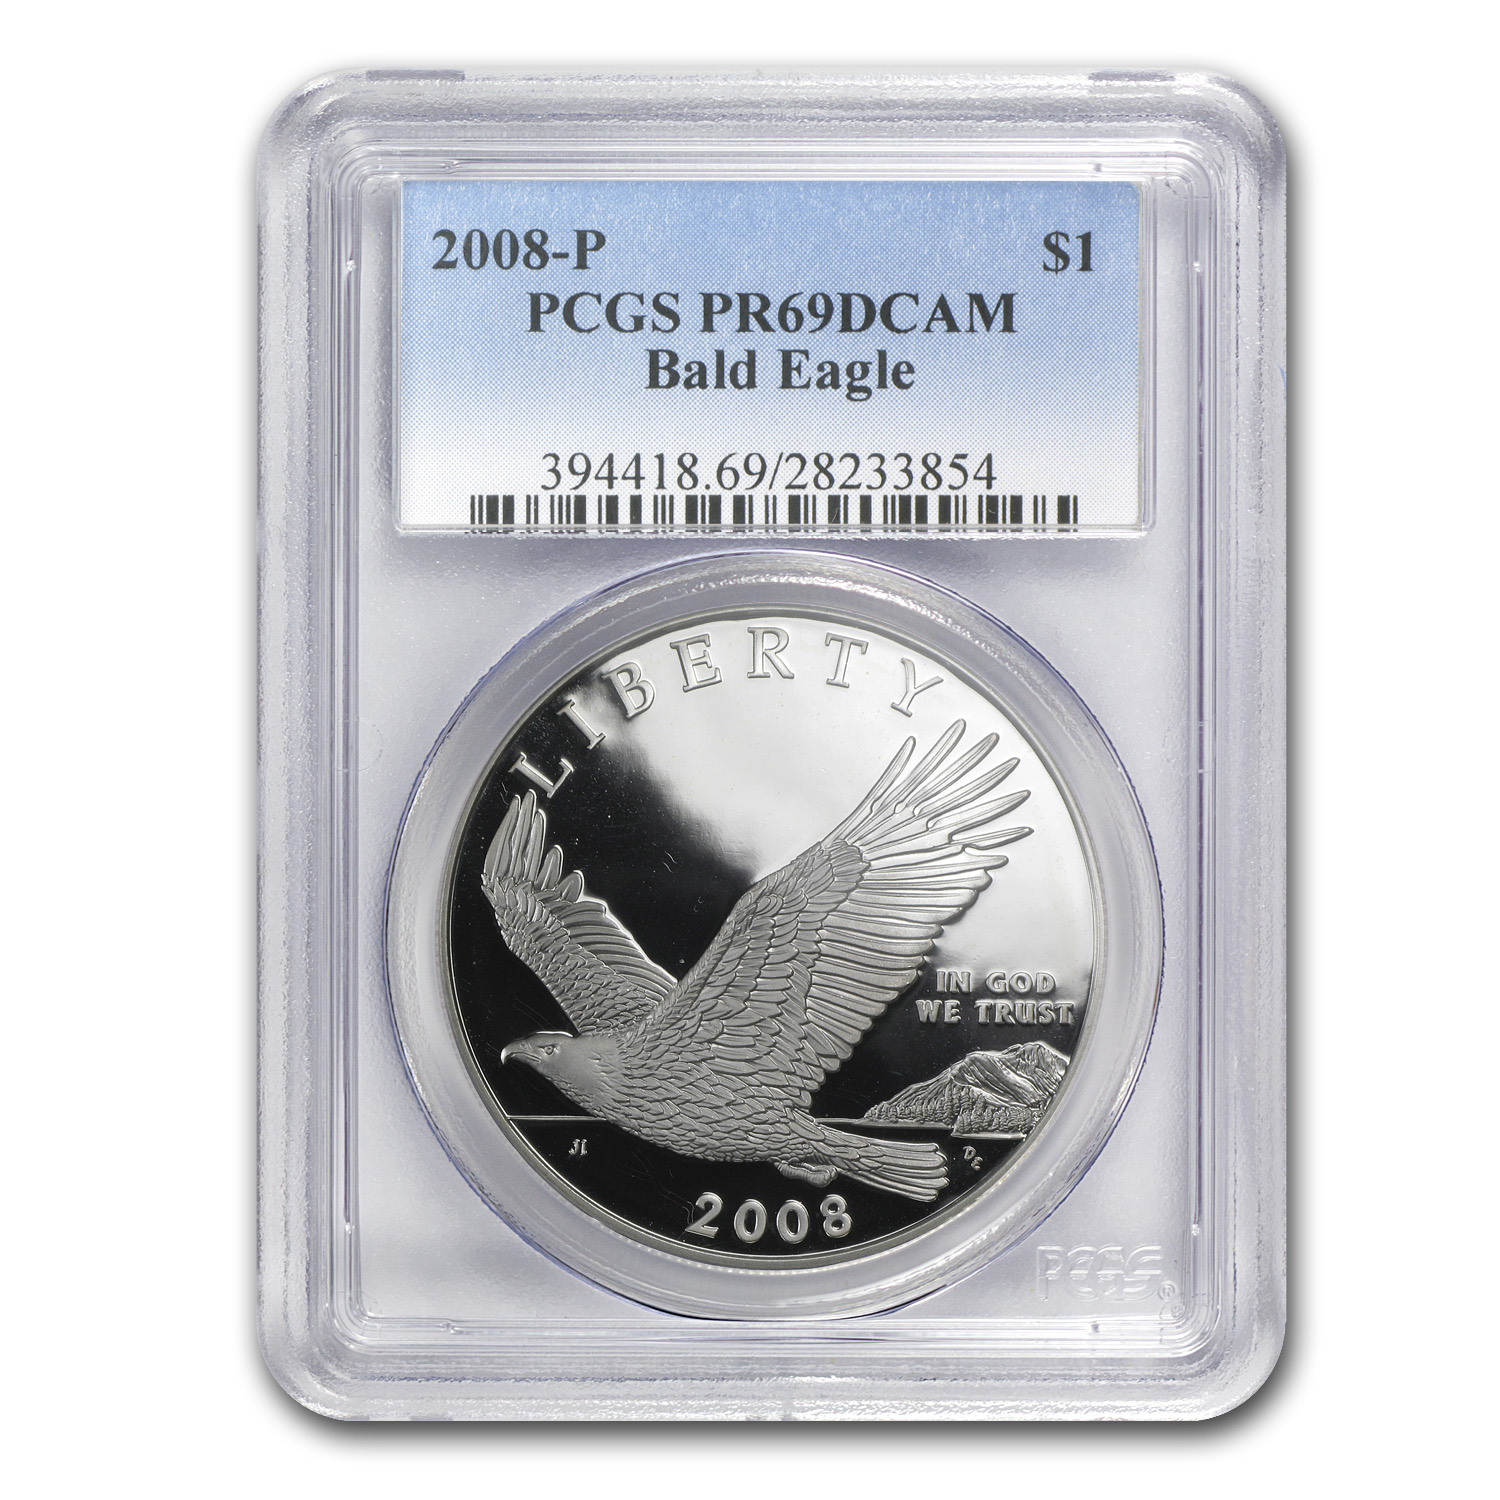 2008-P Bald Eagle $1 Silver Commem PR-69 PCGS